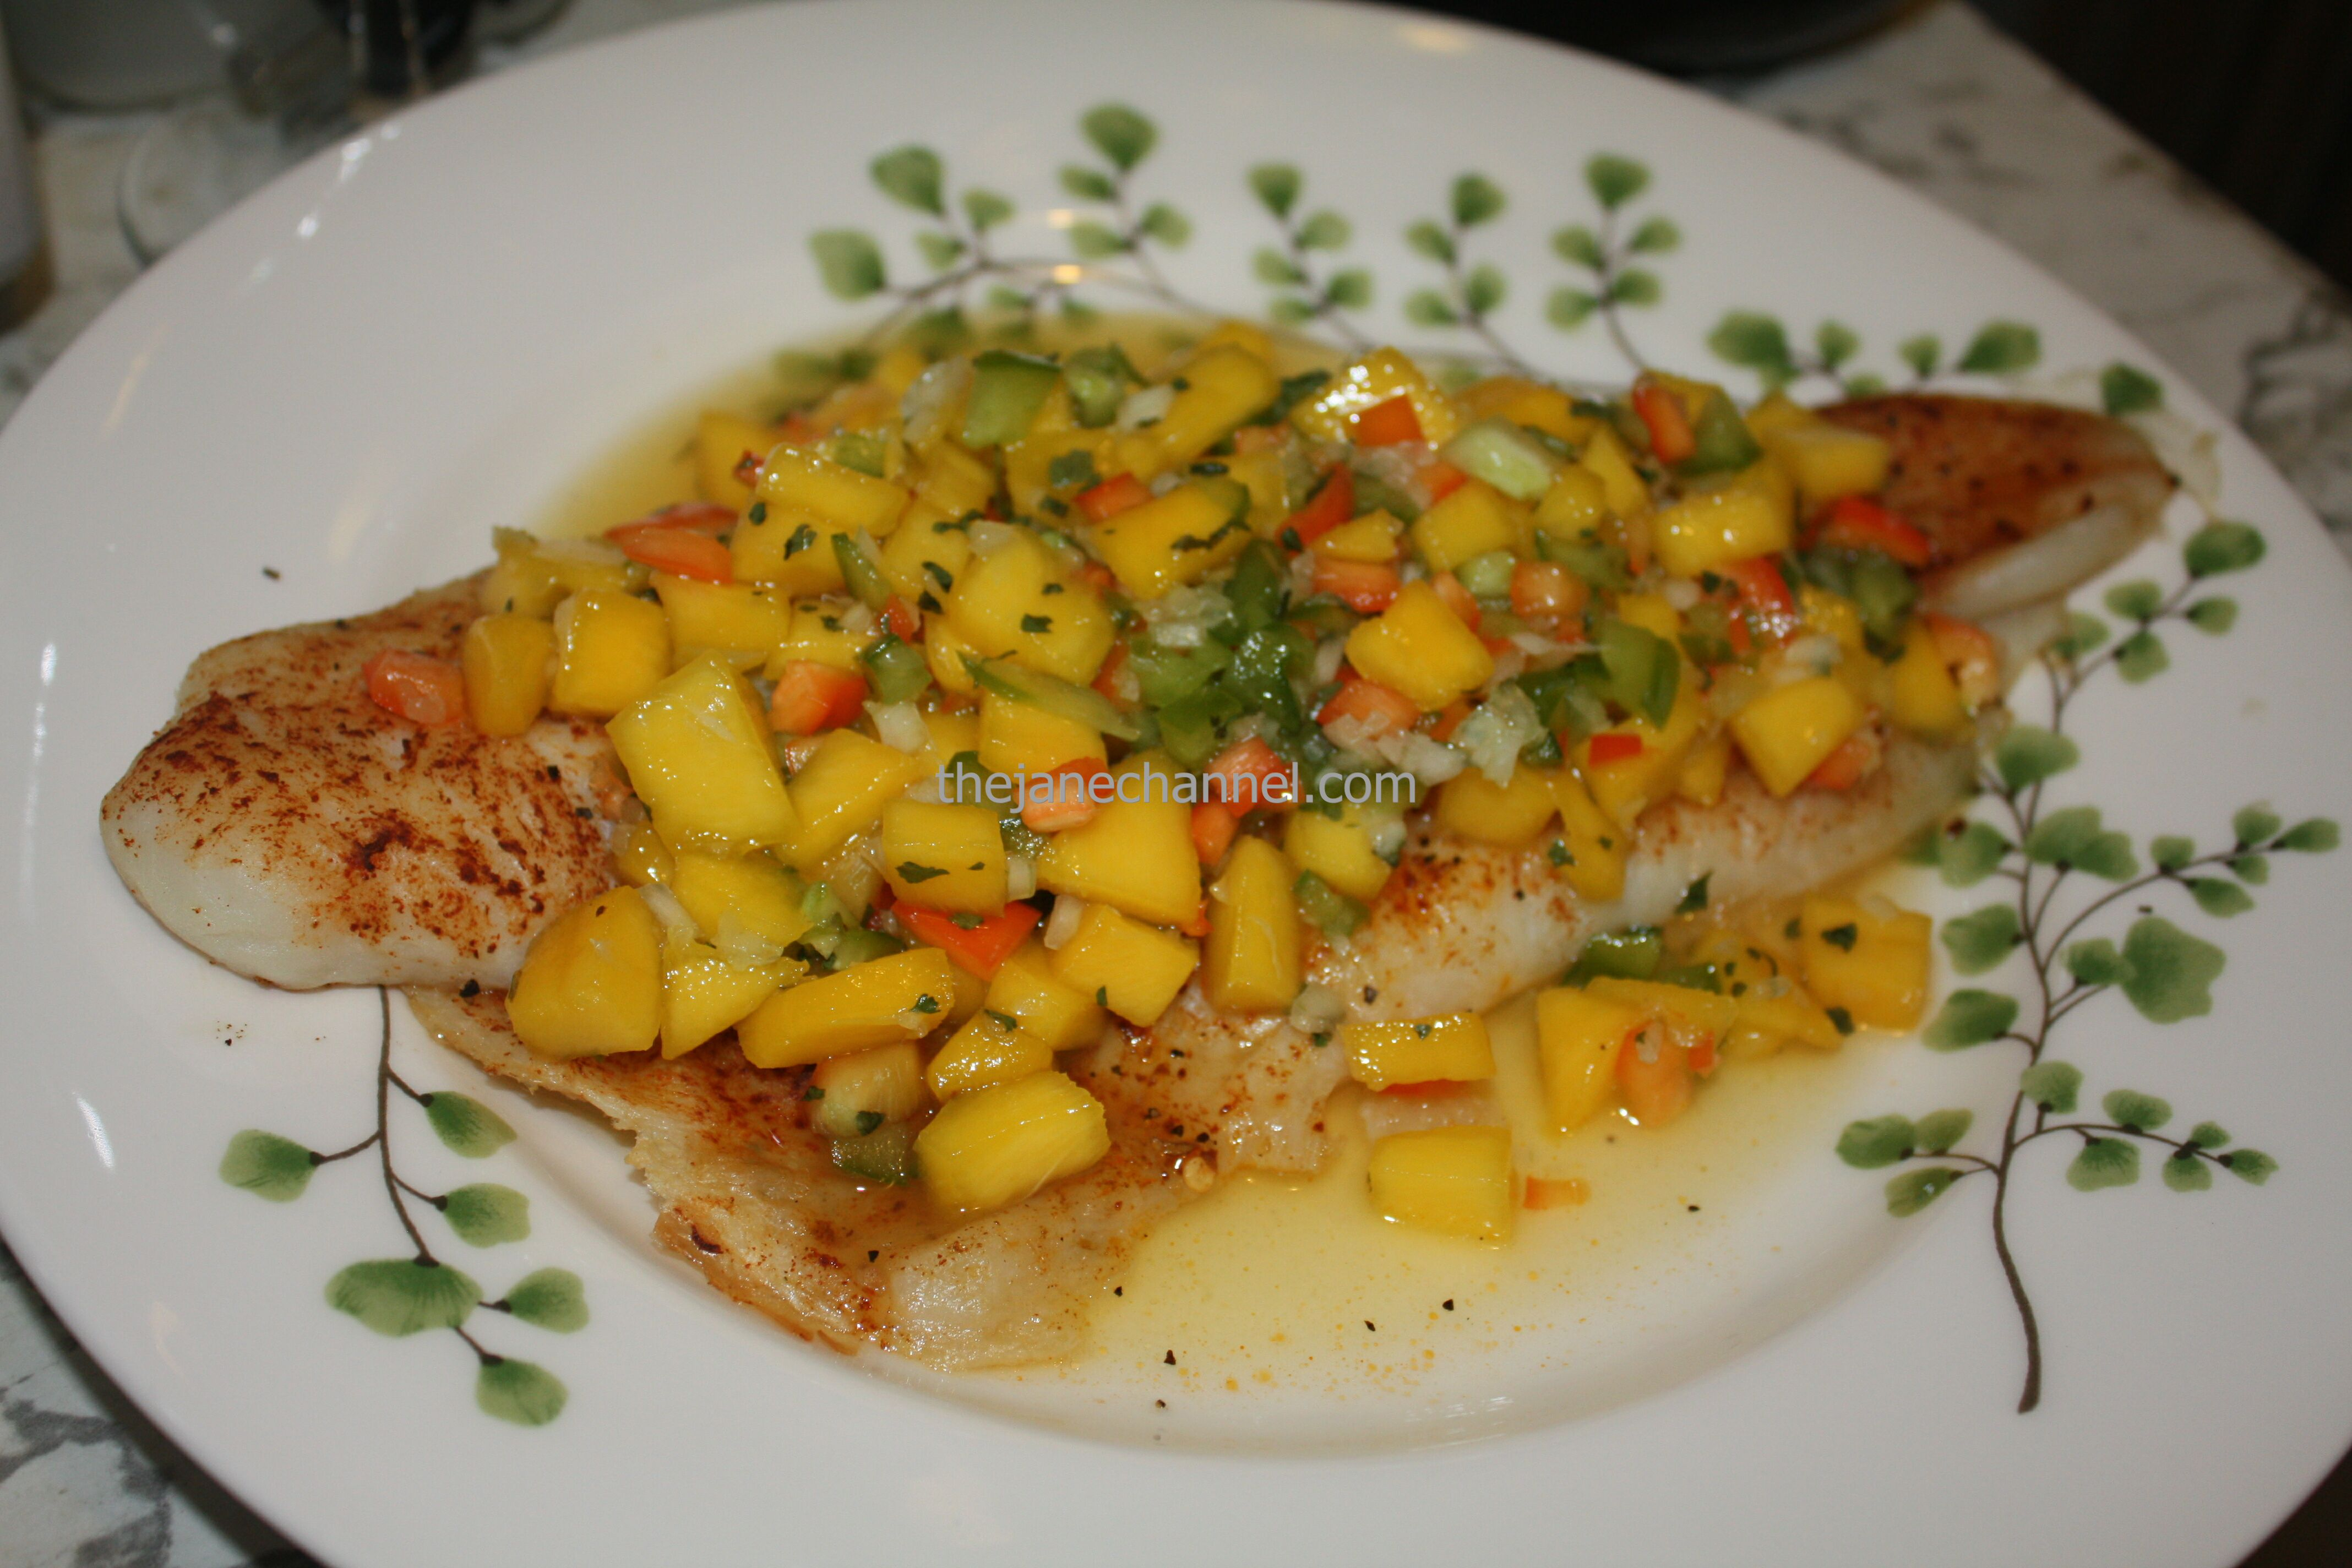 Baked grouper fillet with mango salsa thejanechannel for Grouper fish recipes